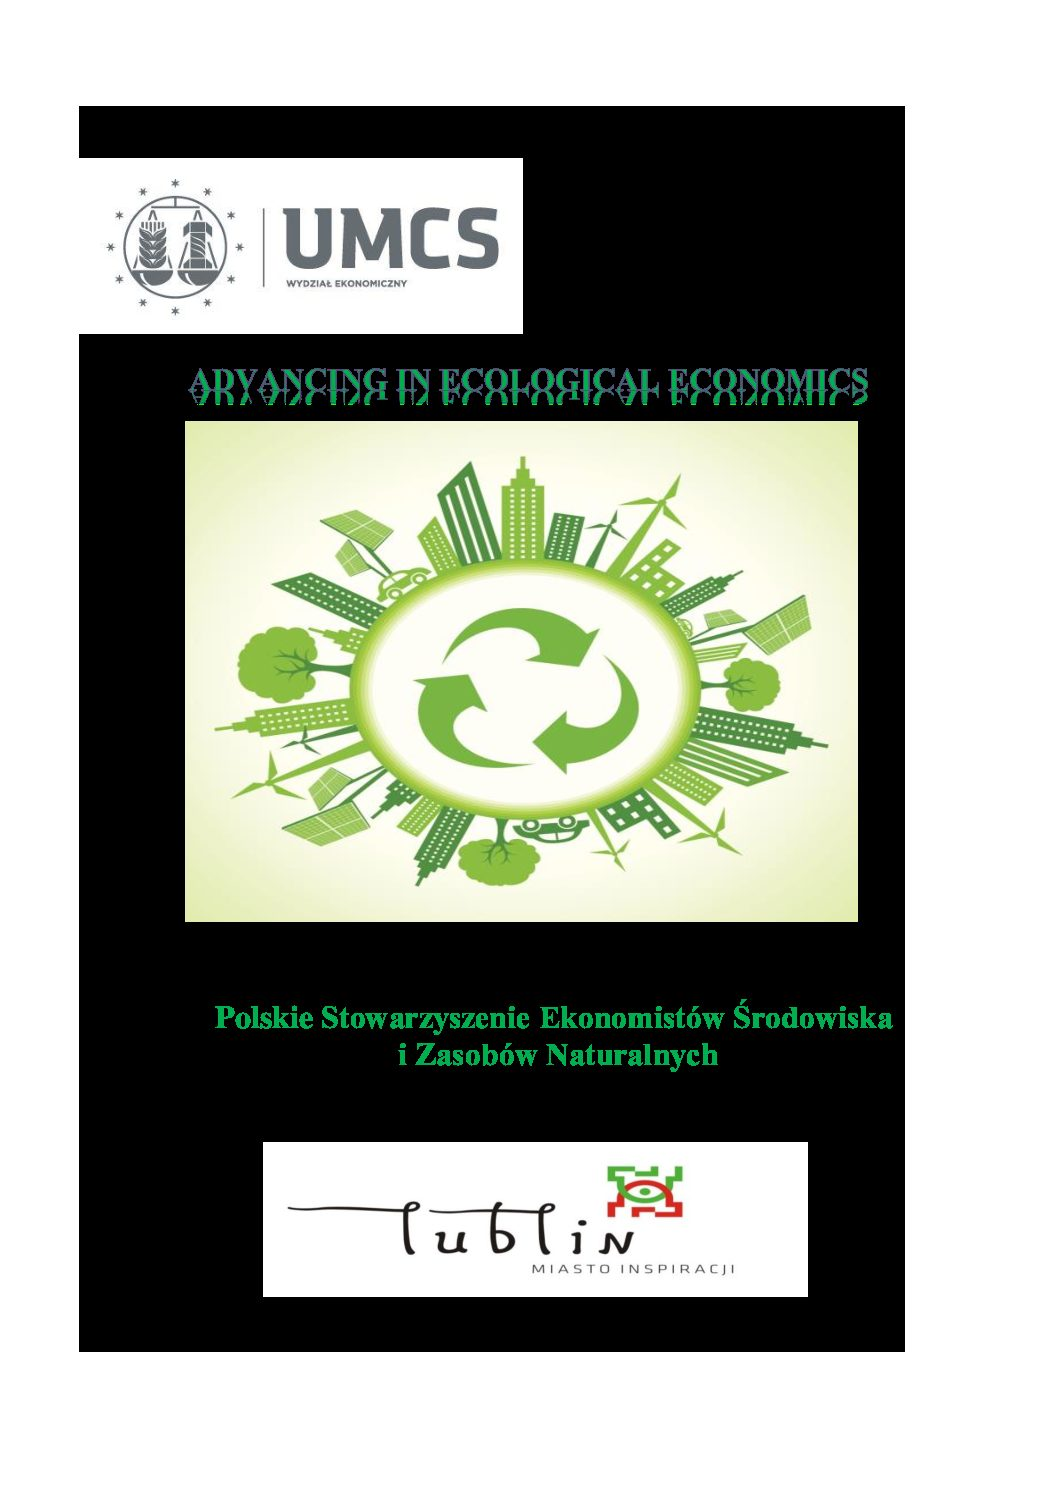 """KONFERENCJA """"ADVANCING IN ECOLOGICAL ECONOMICS"""", Lublin 15.09.2020 r."""